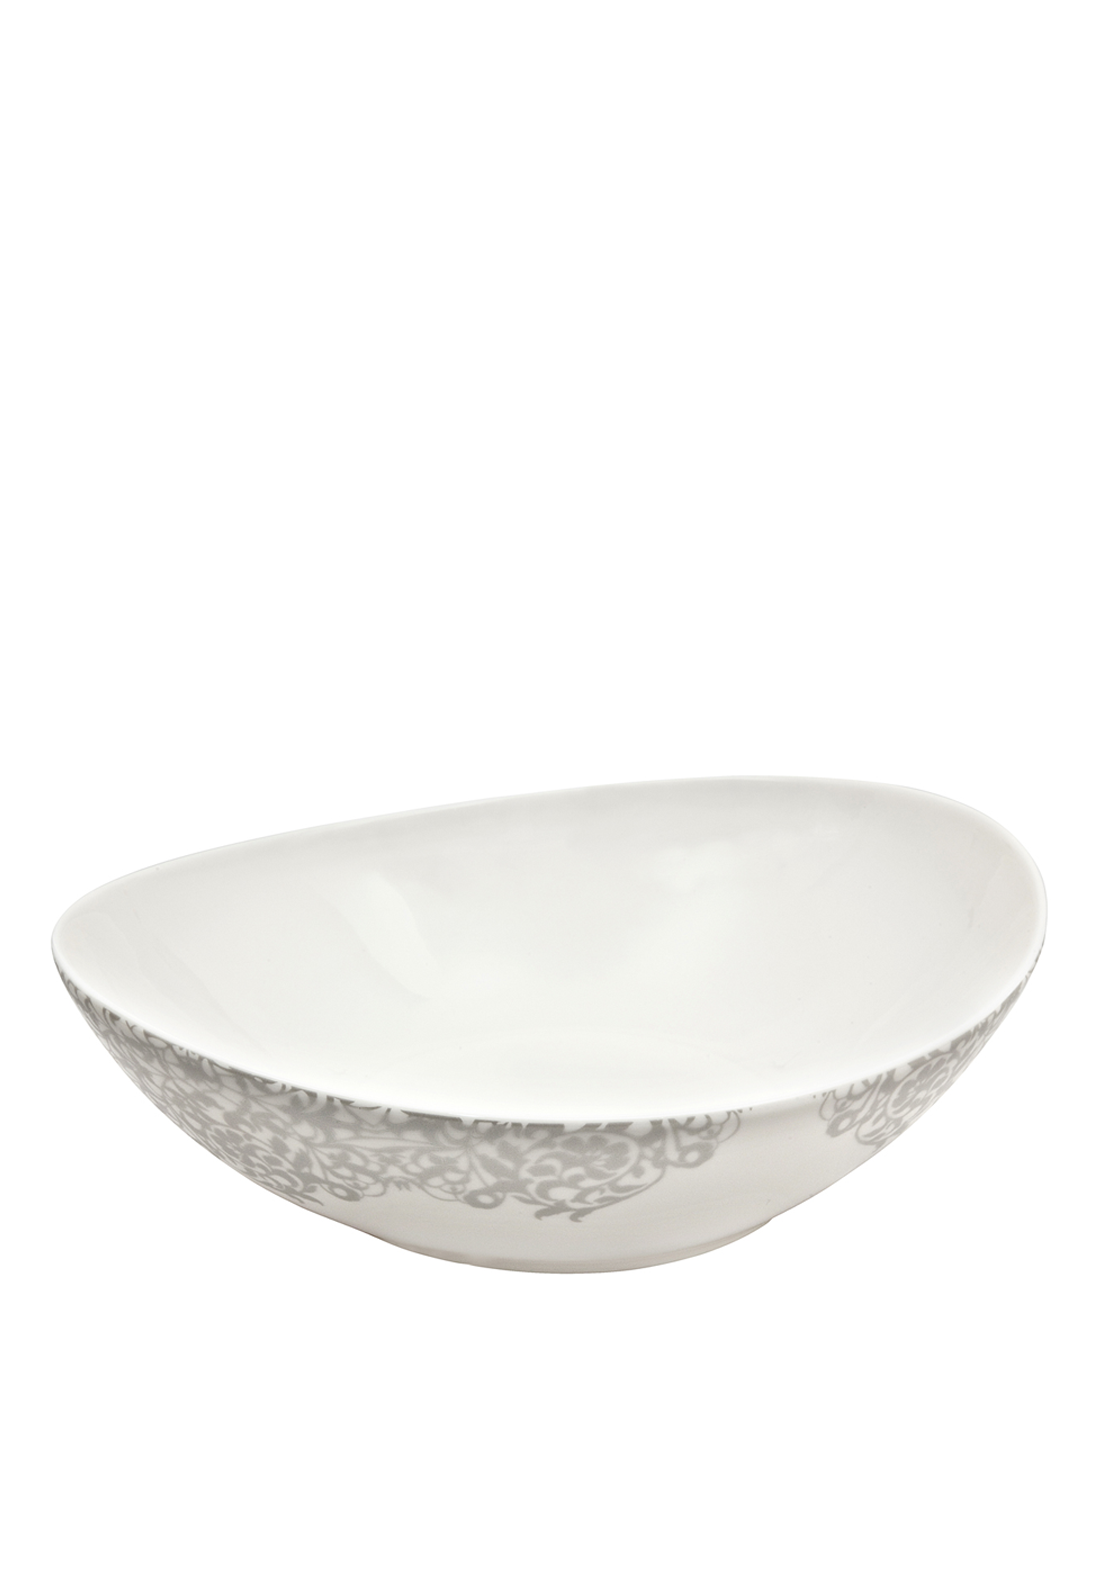 Denby Monsoon Filigree Soup / Cereal Bowl, Silver